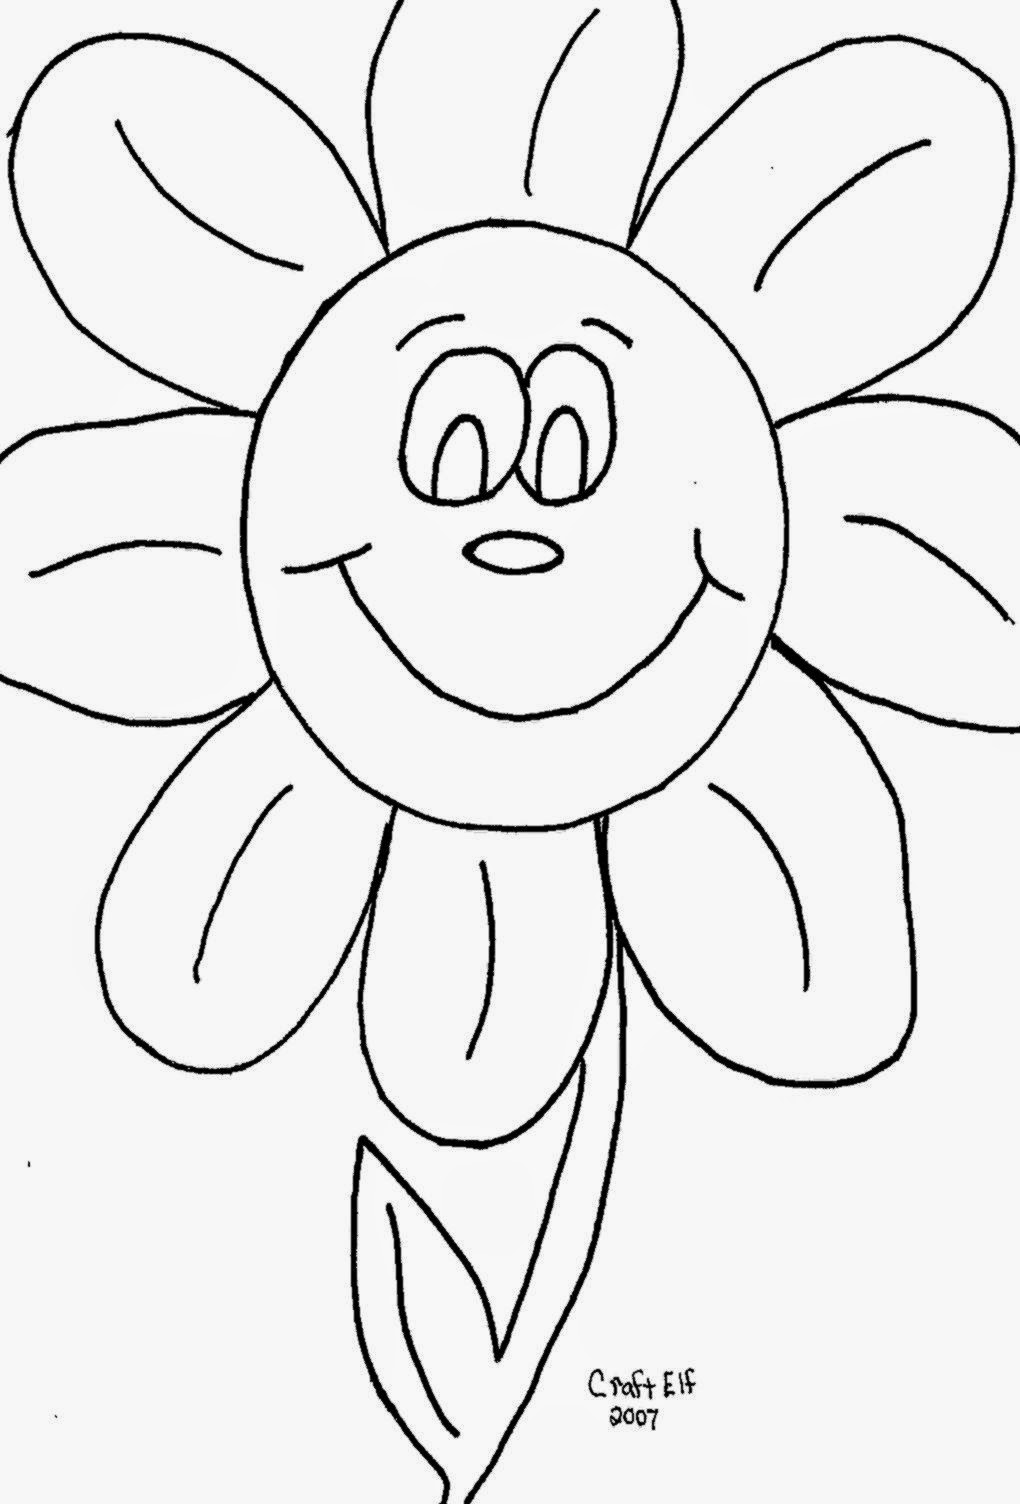 Kindergarten color sheets free coloring sheet Coloring book for kinder